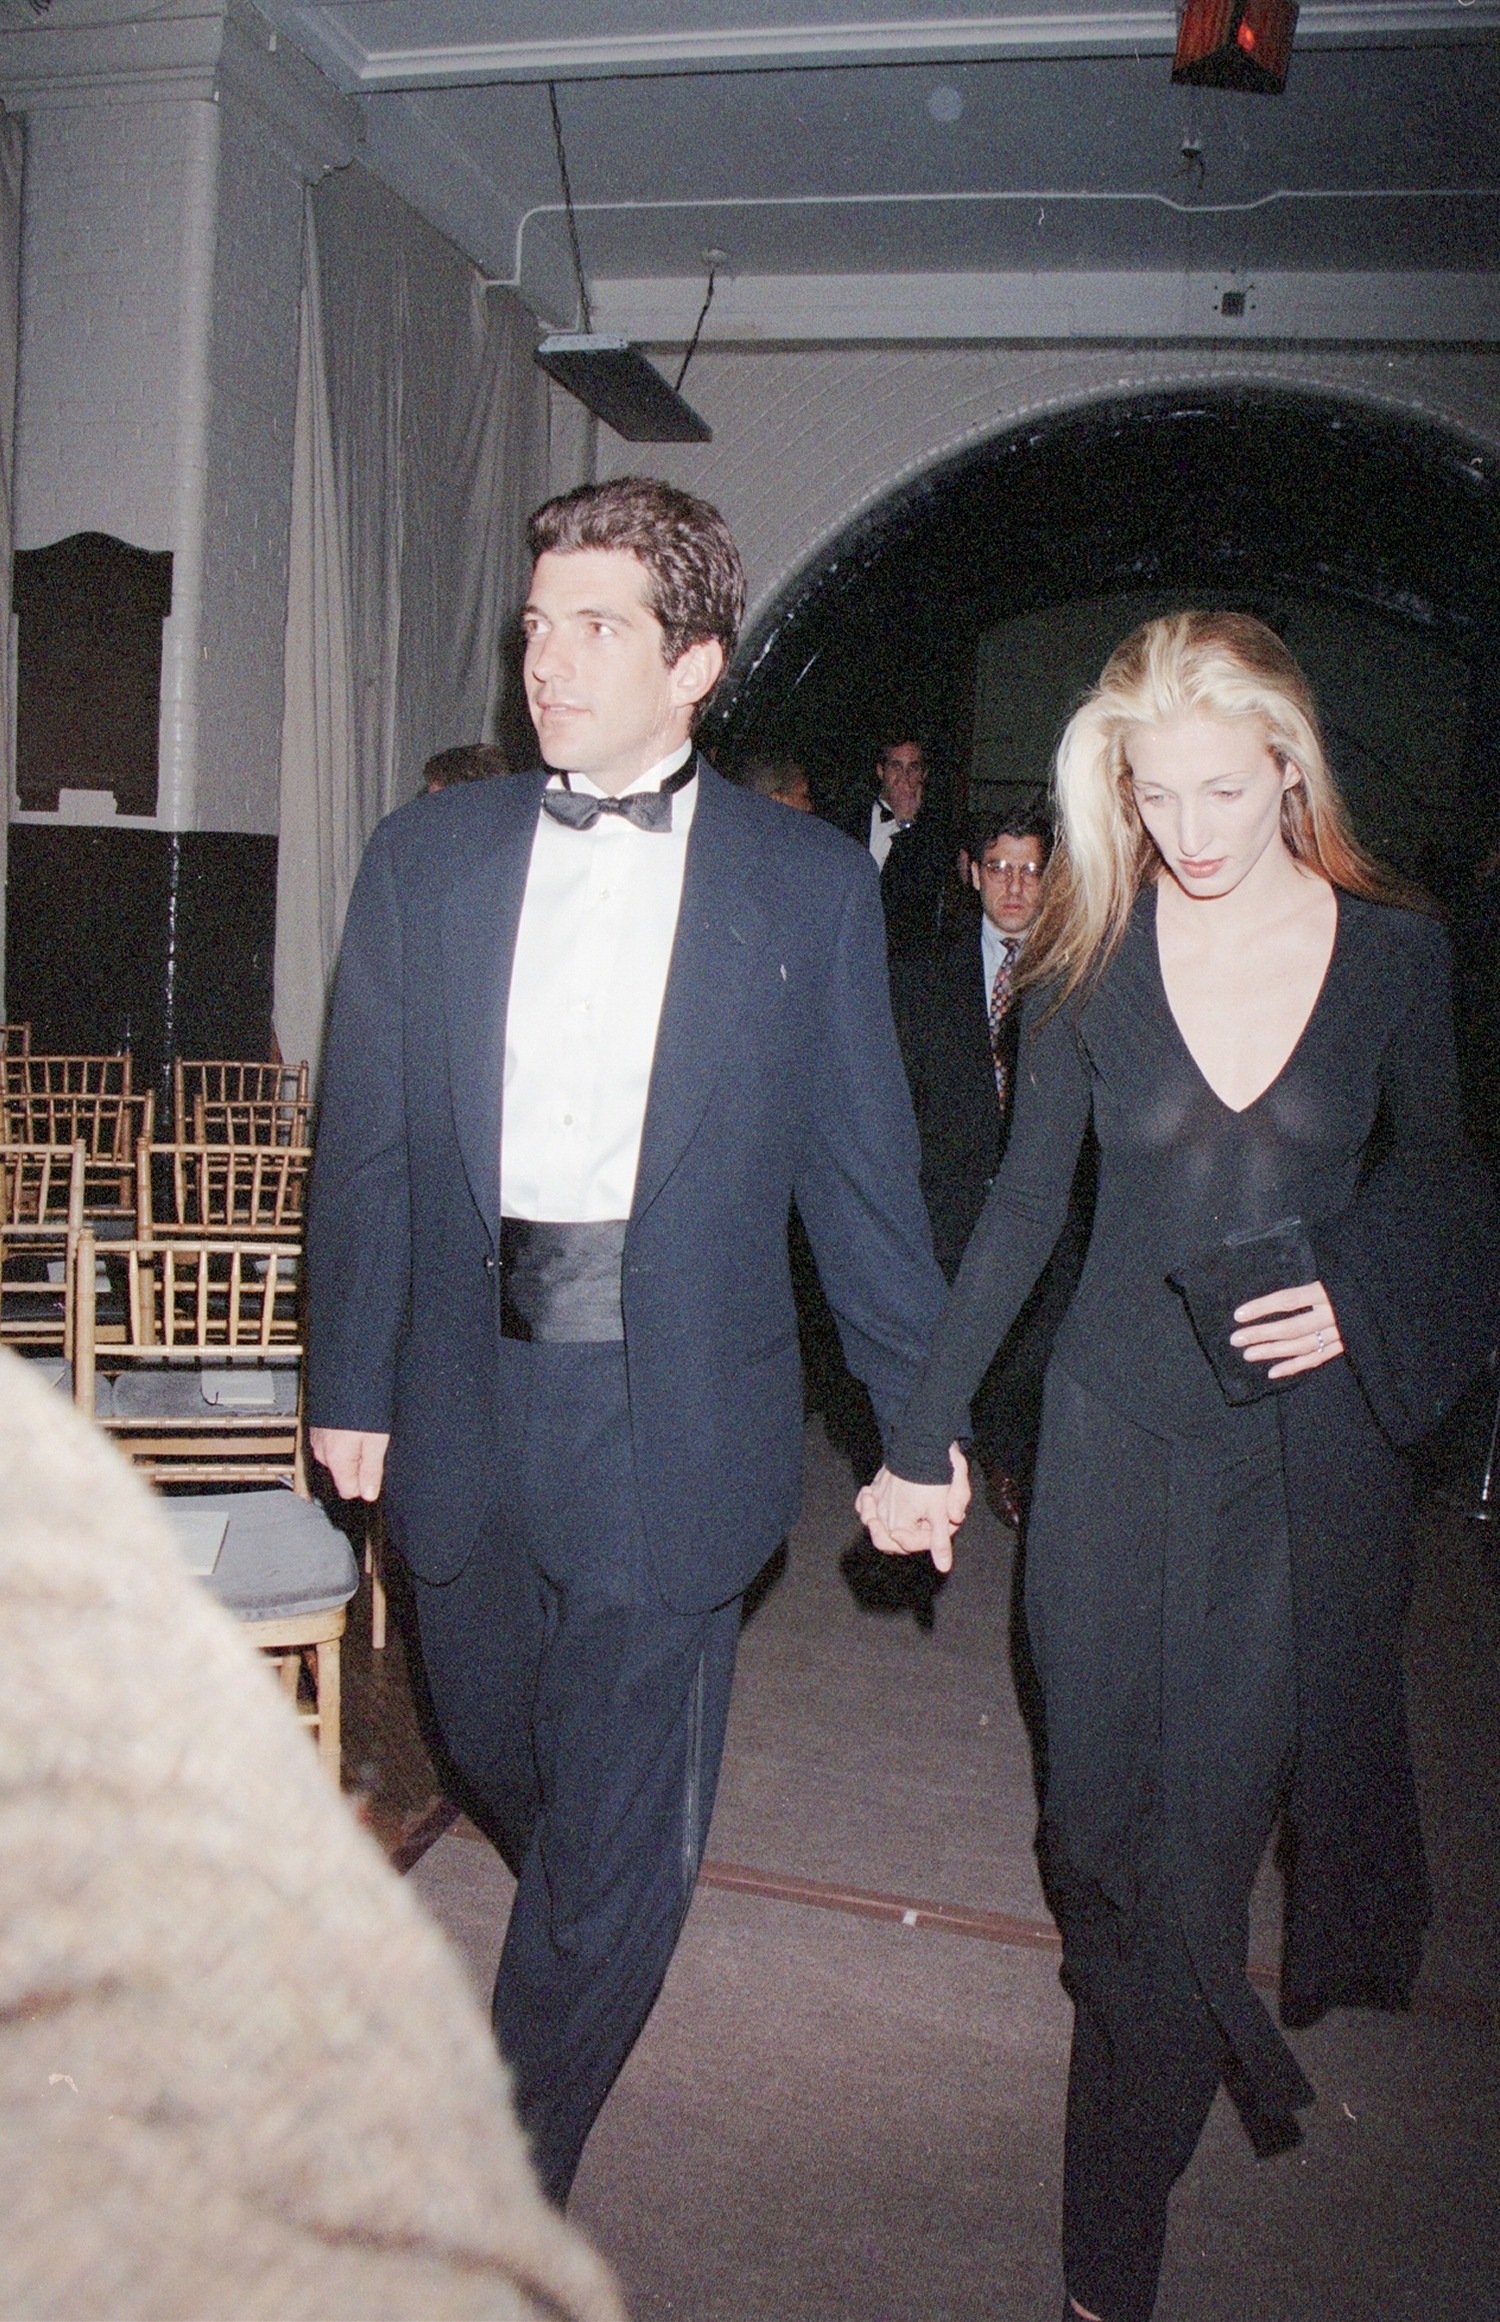 John F. Kennedy Jr. and Carolyn Bessette